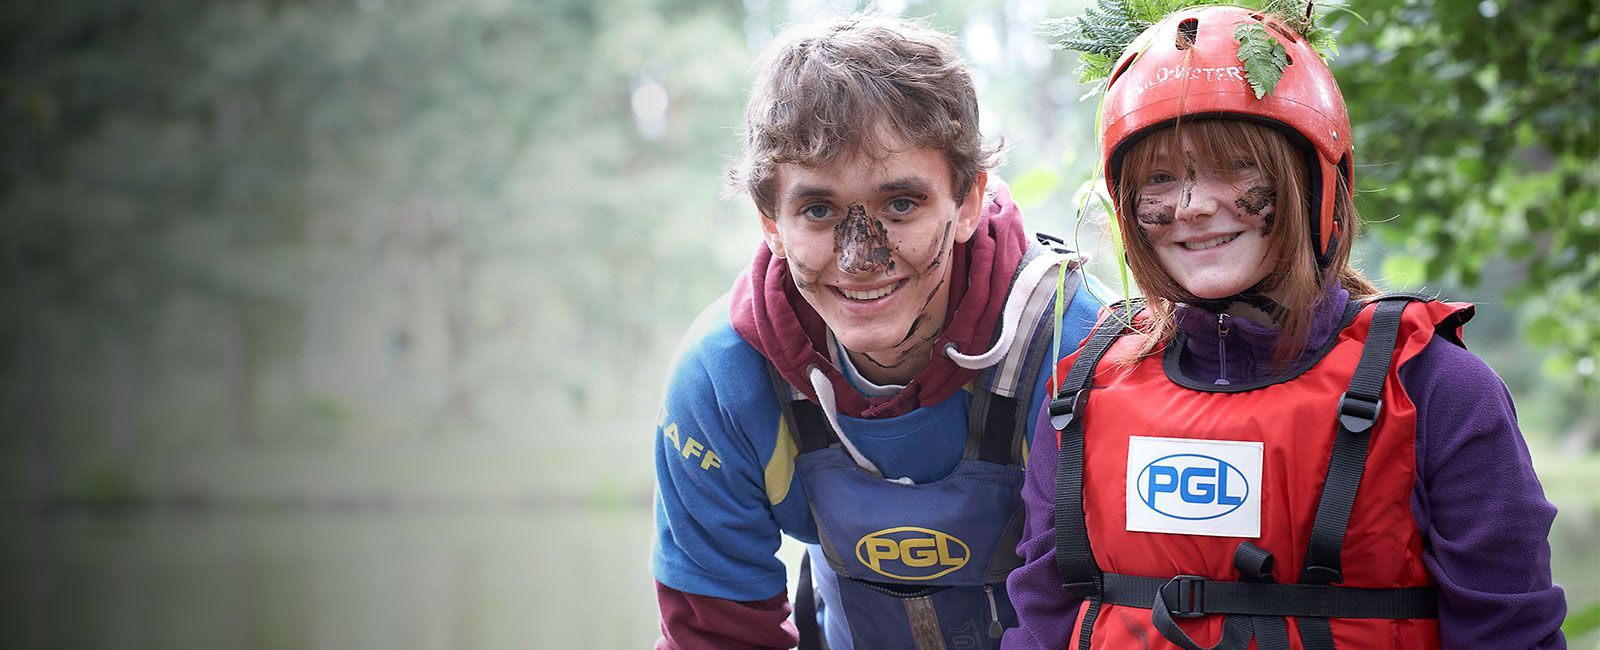 PGL Instructor with girl on an adventure holiday